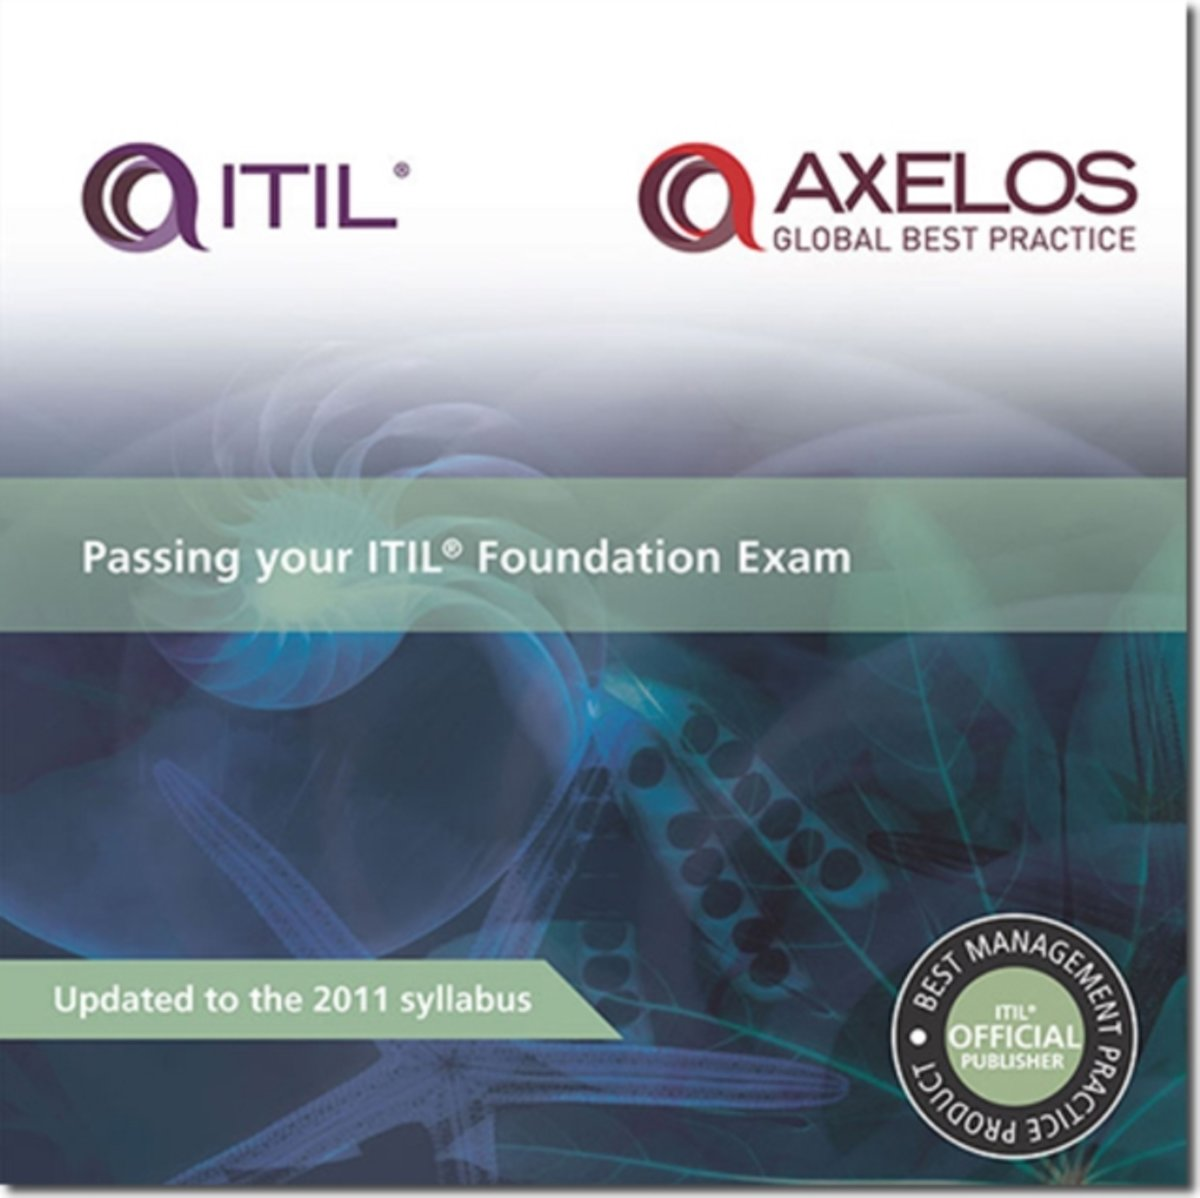 Passing Your ITIL Foundation Exam